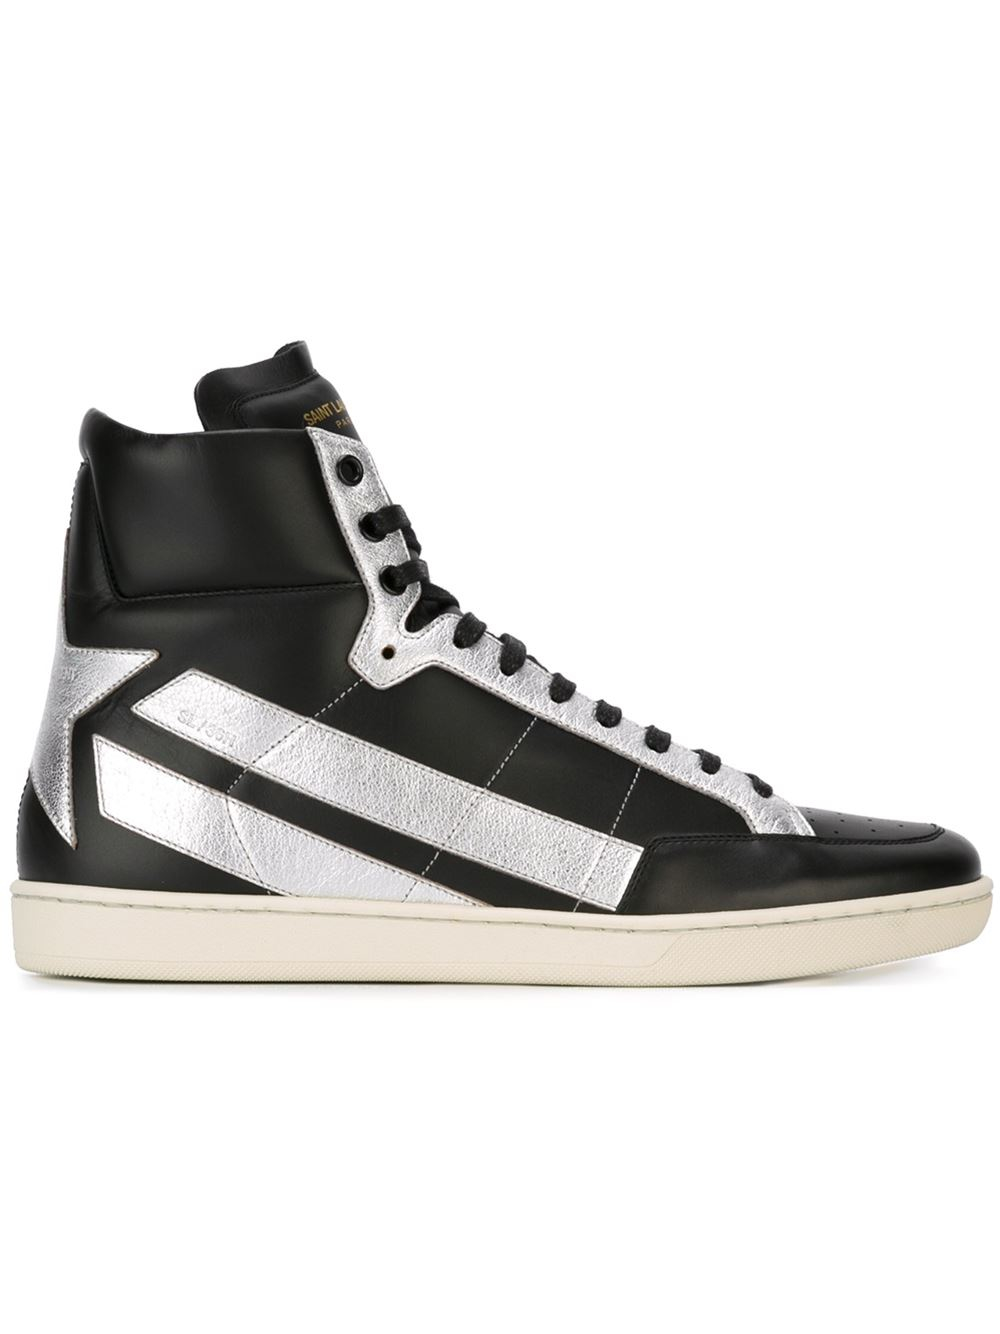 lyst saint laurent leather sneakers in metallic. Black Bedroom Furniture Sets. Home Design Ideas